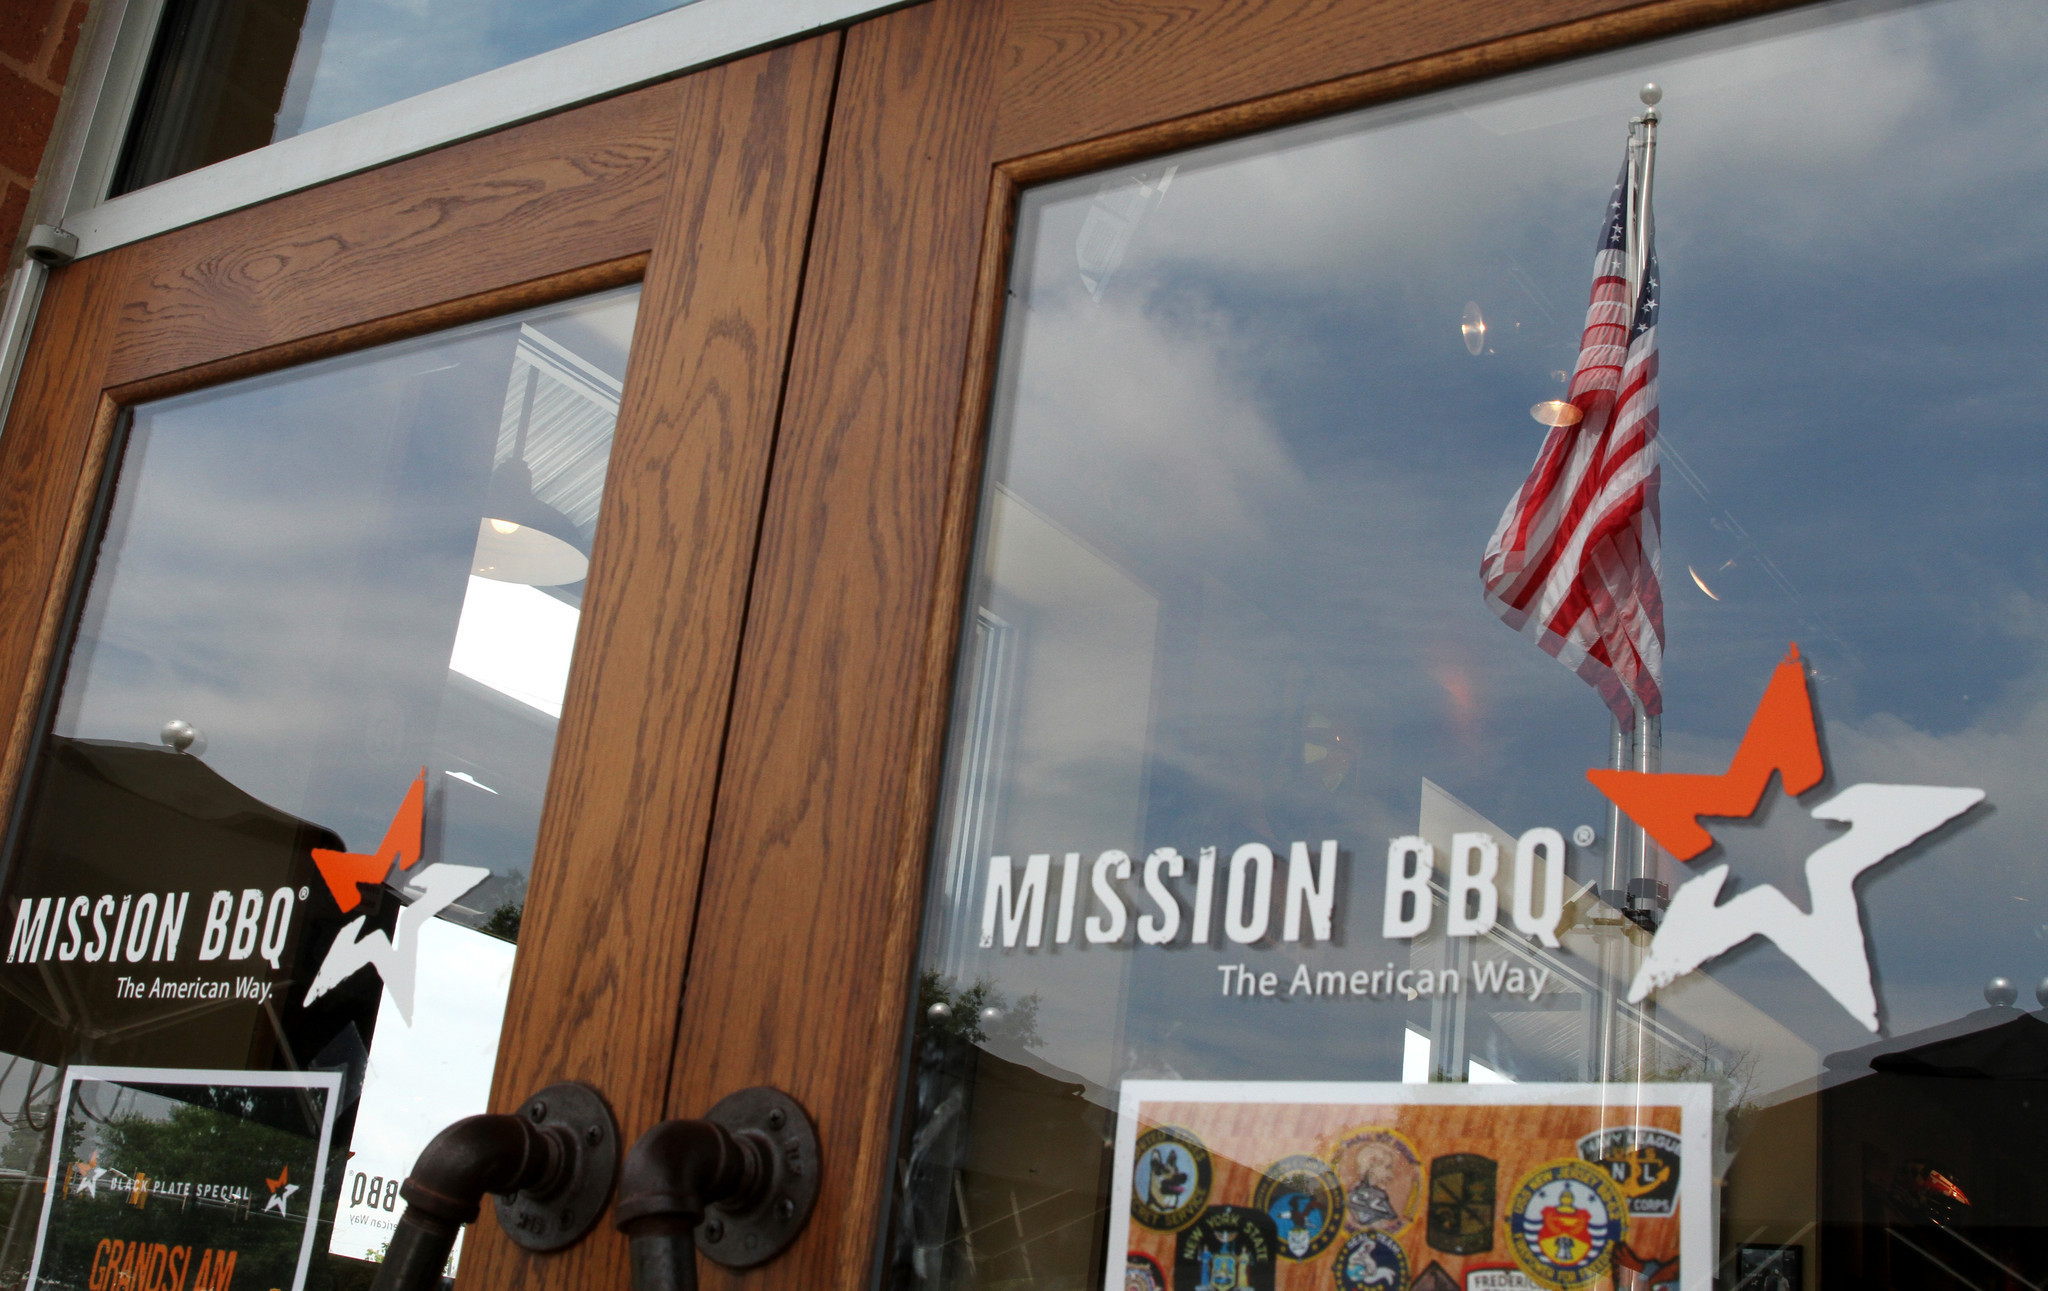 Outback Glen Burnie >> Mission BBQ, Outback Steakhouse expanding to Gambrills - Capital Gazette